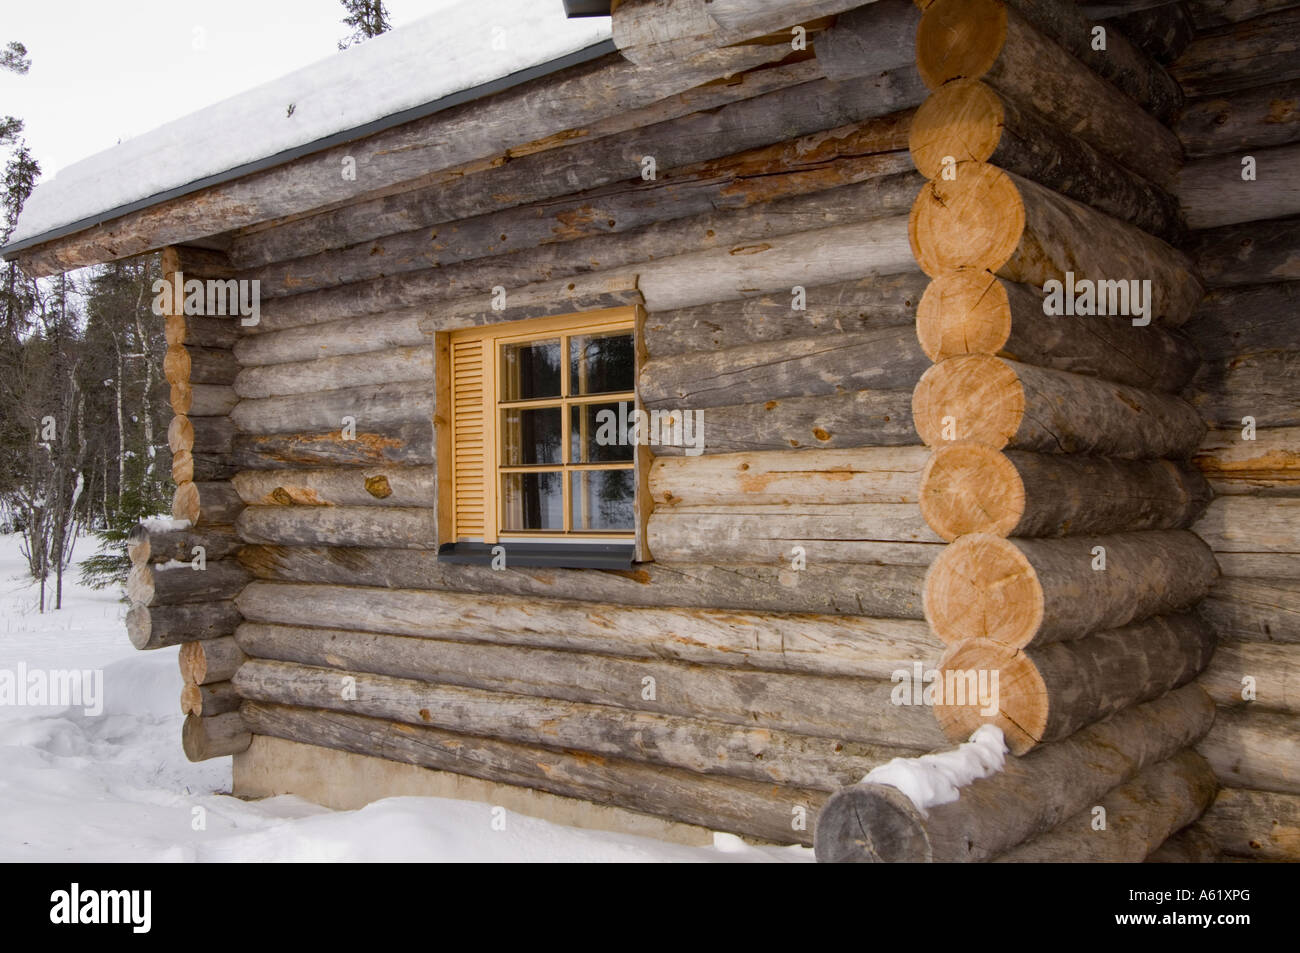 Log Cabin Luosto Lapland Northern Finland Europe